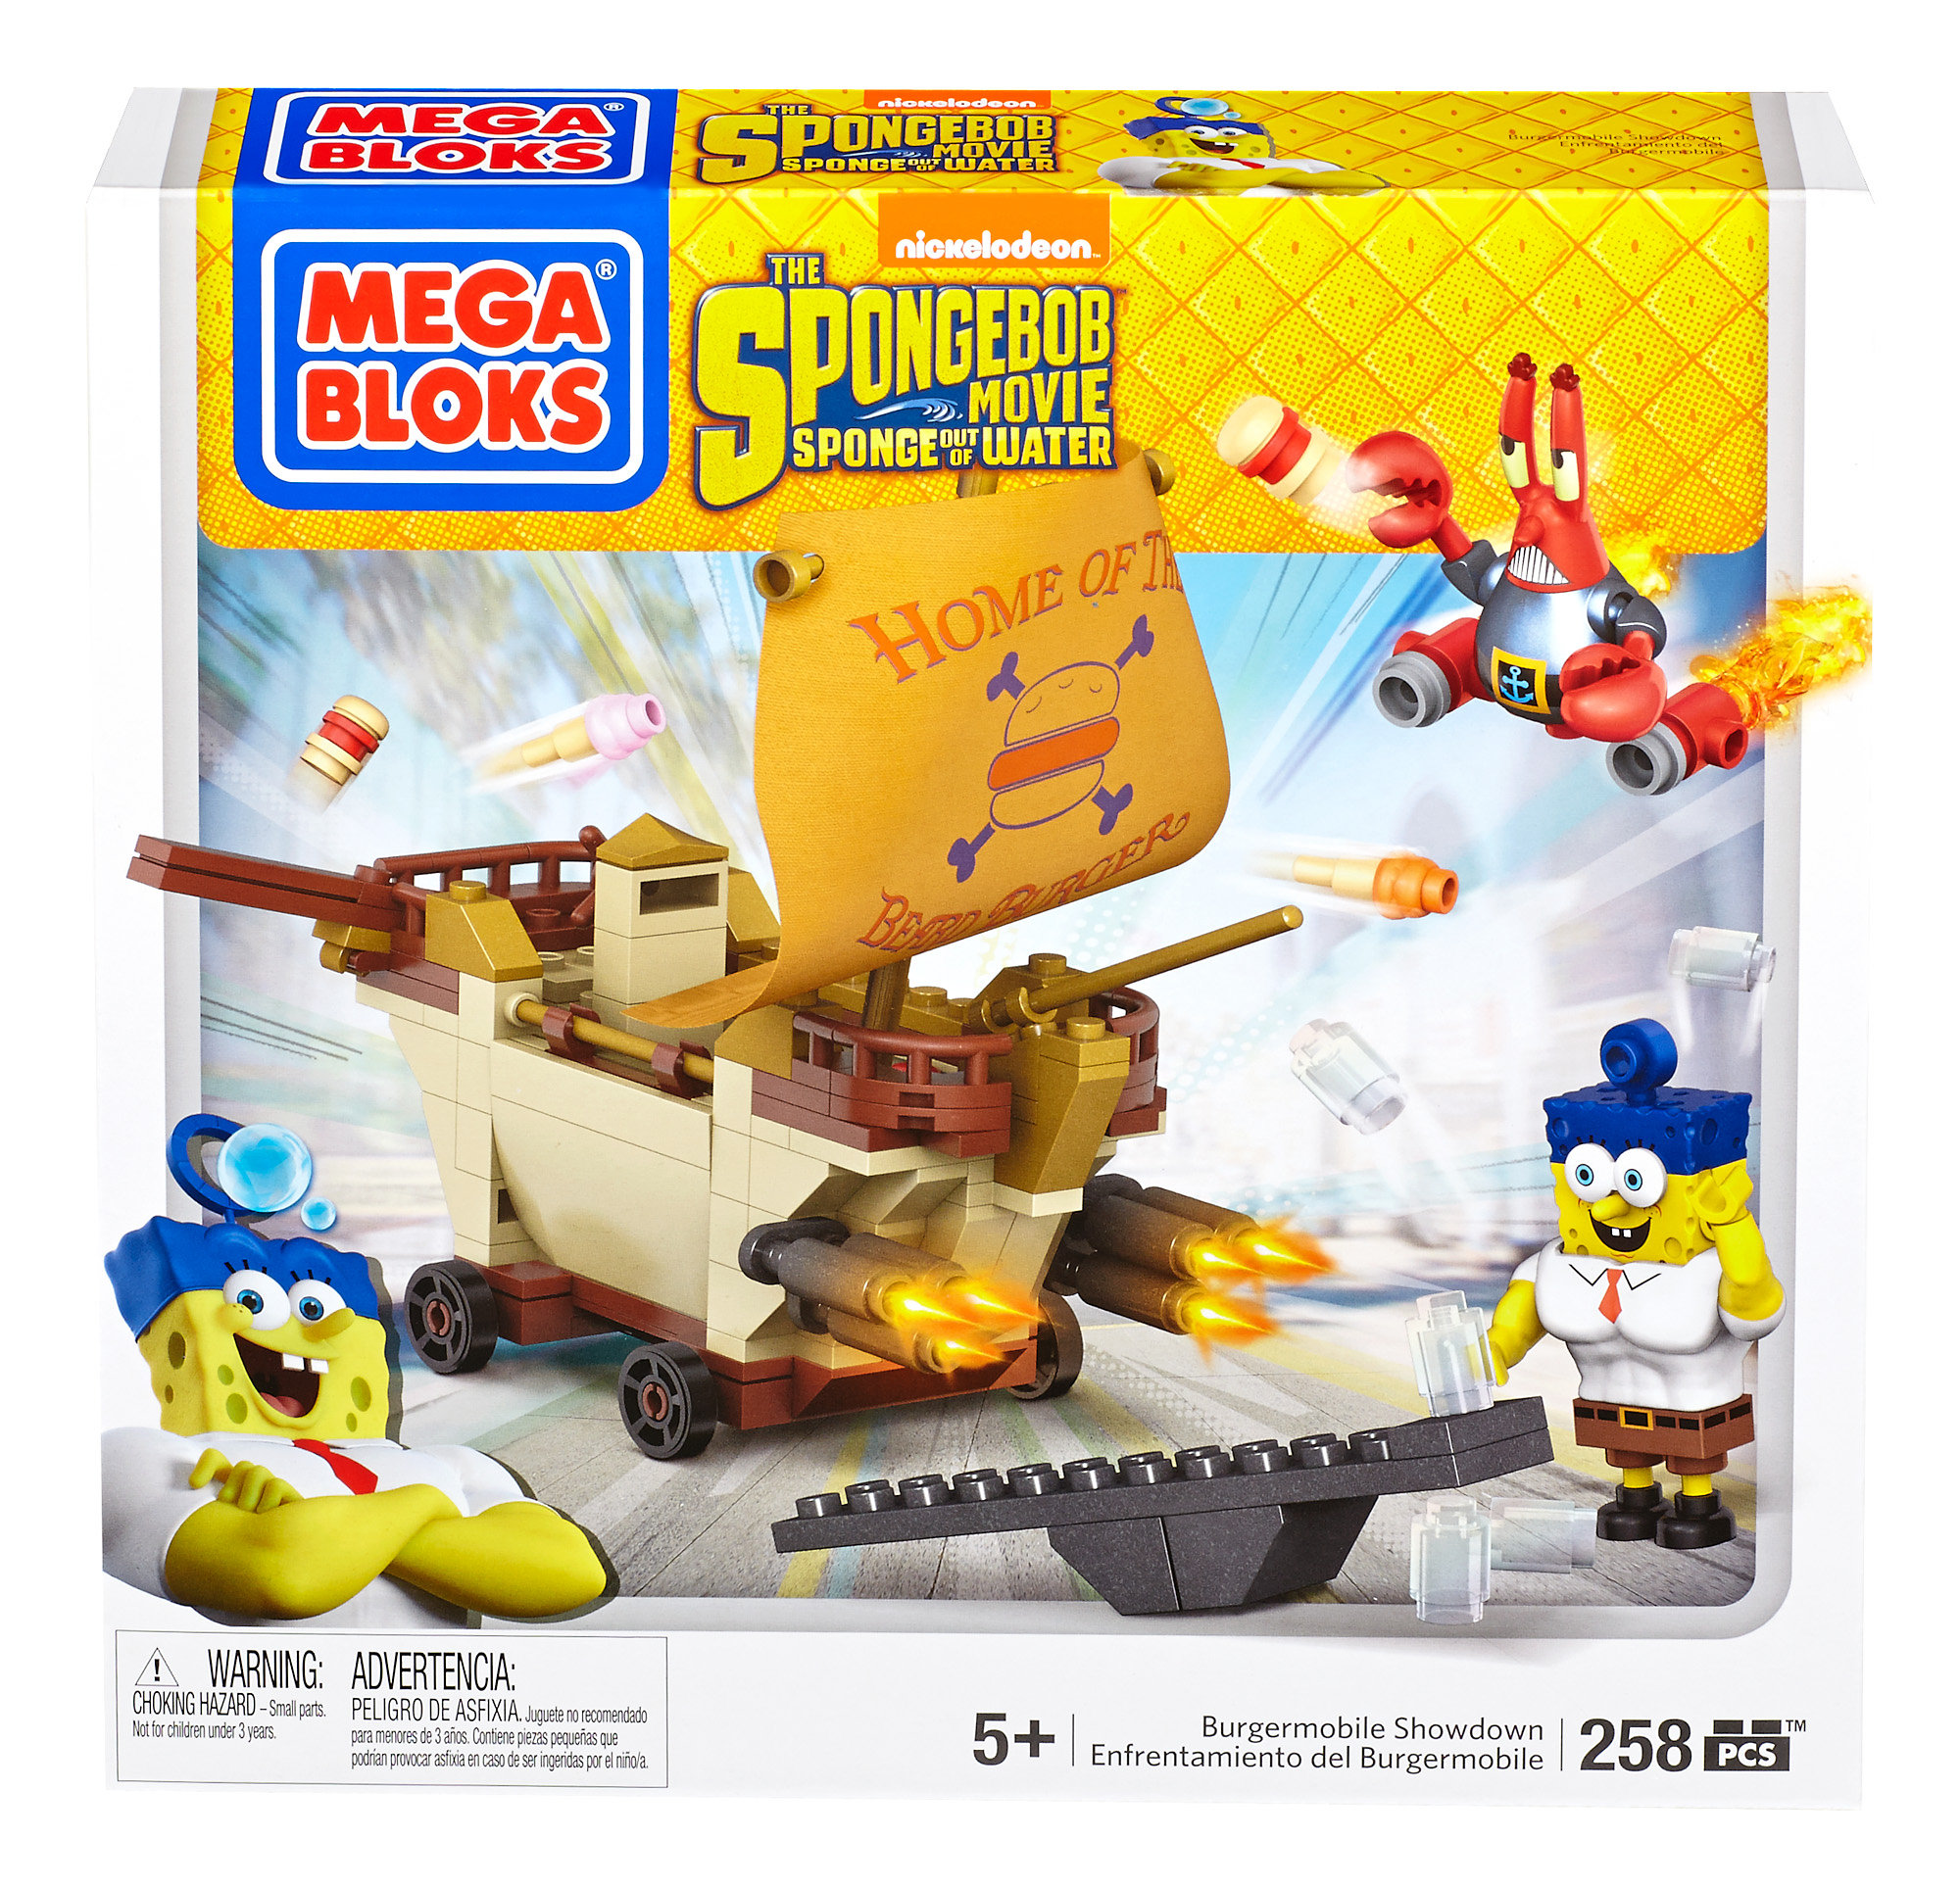 Mega Bloks SpongeBob SquaurePants Burgermobile Showdown Building Set Multi-Colored by Mega Bloks